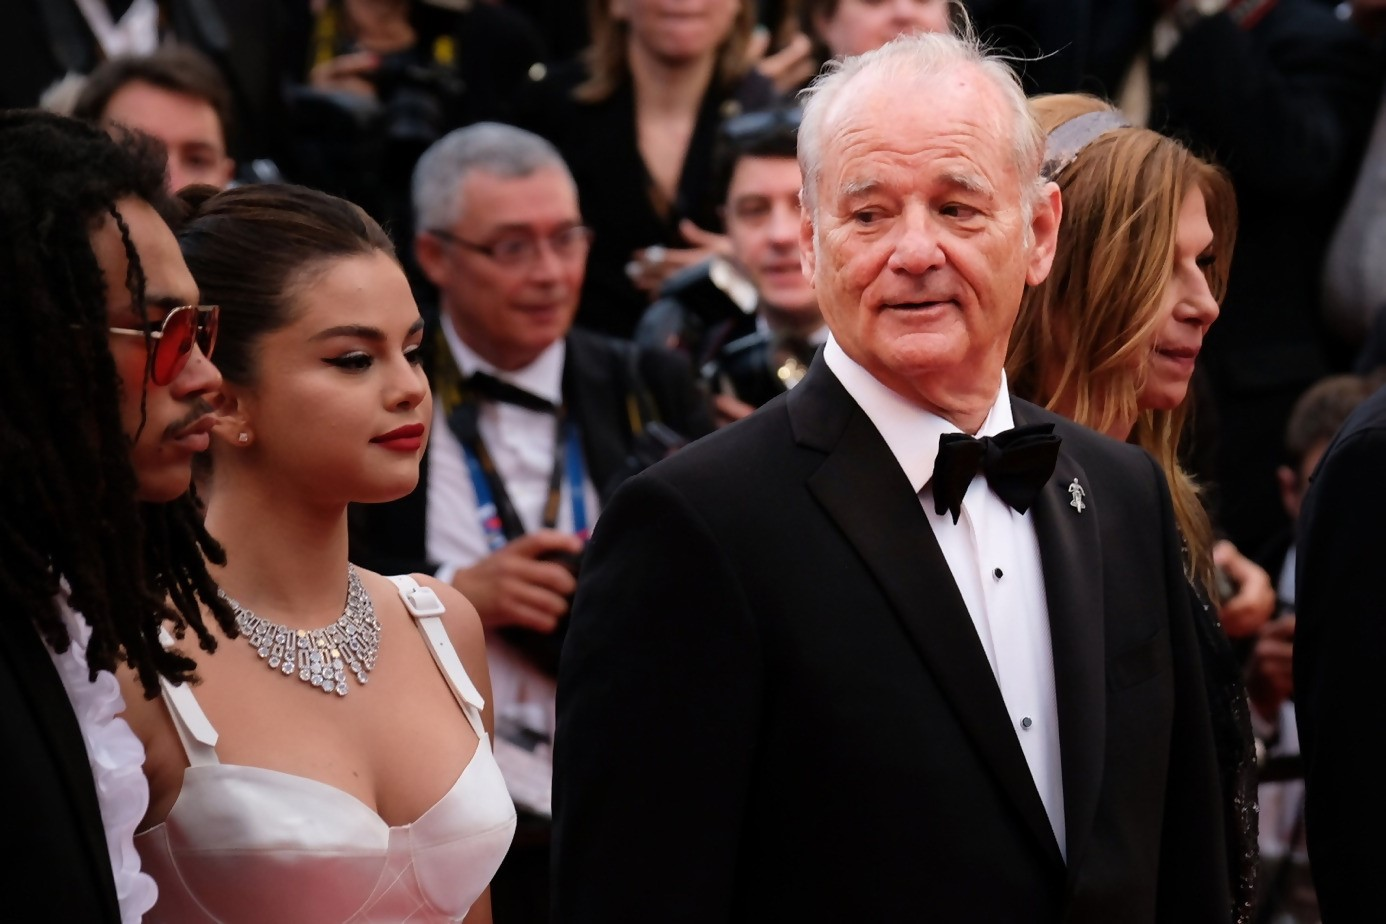 Red Carpet in Cannes Film Festival : Bill Murray and Selena Gomez for « The Dead Won't Die » movie